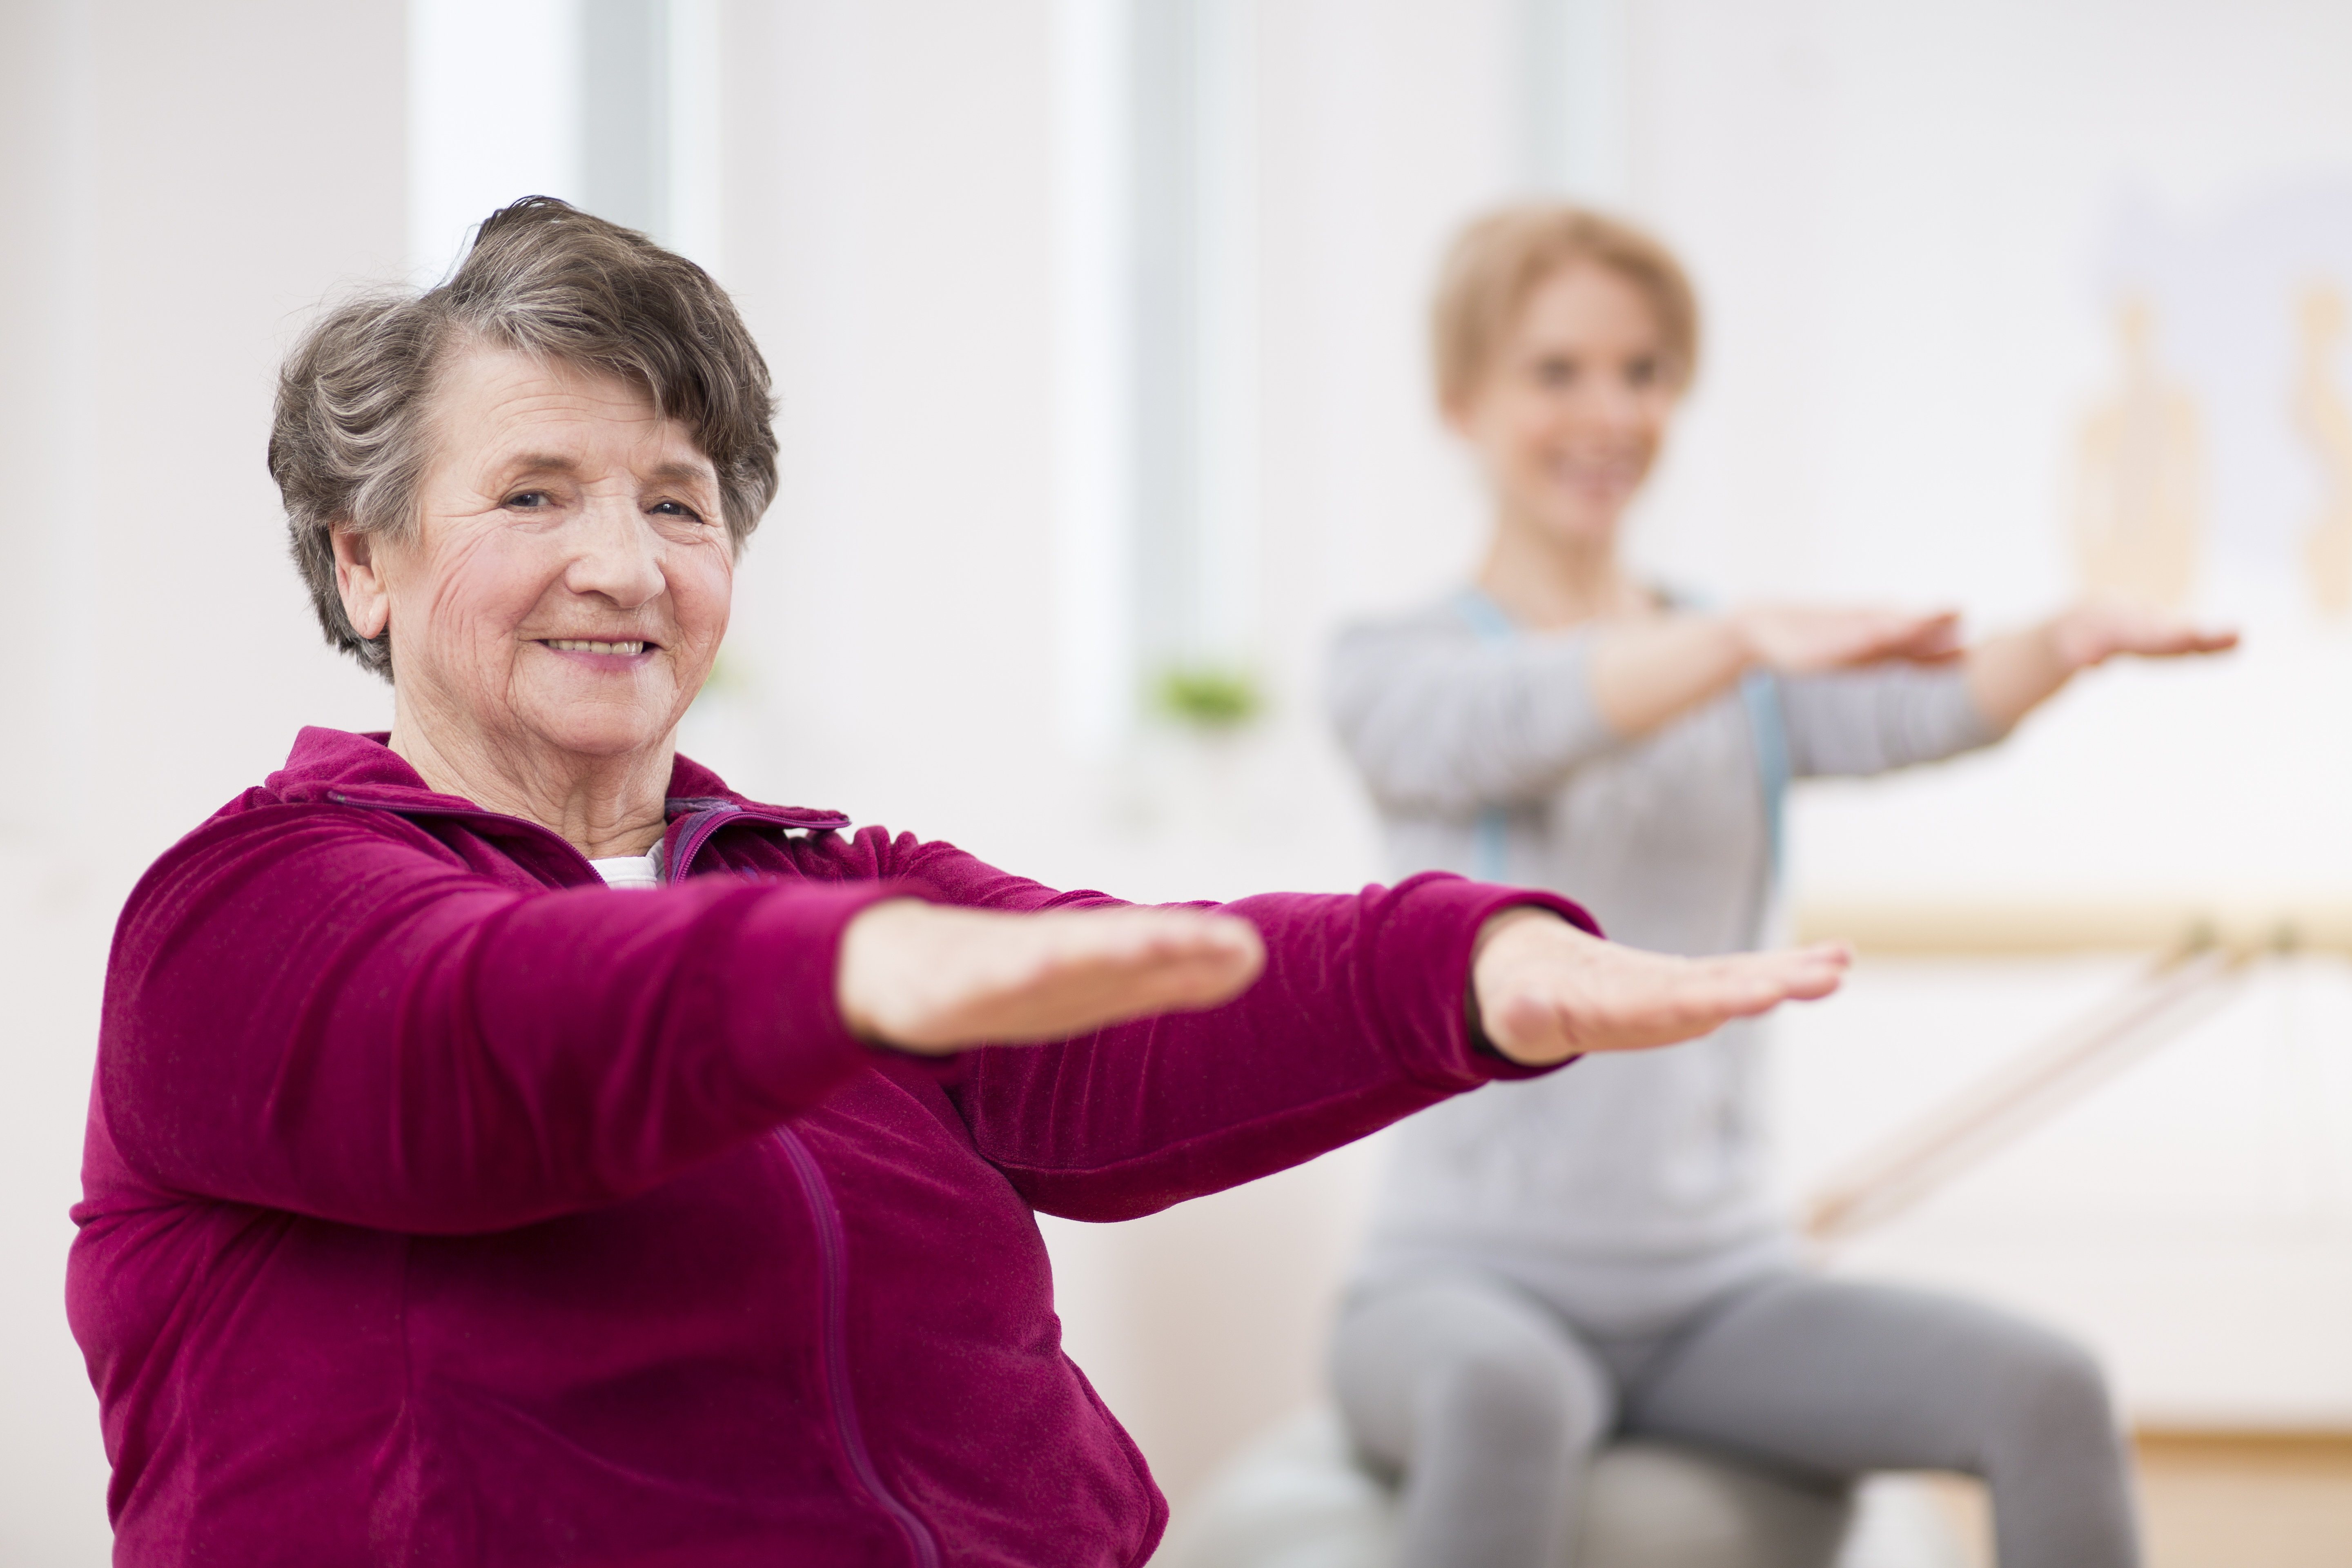 Get Fit With Your Library: Arthritis and Joint Mobility